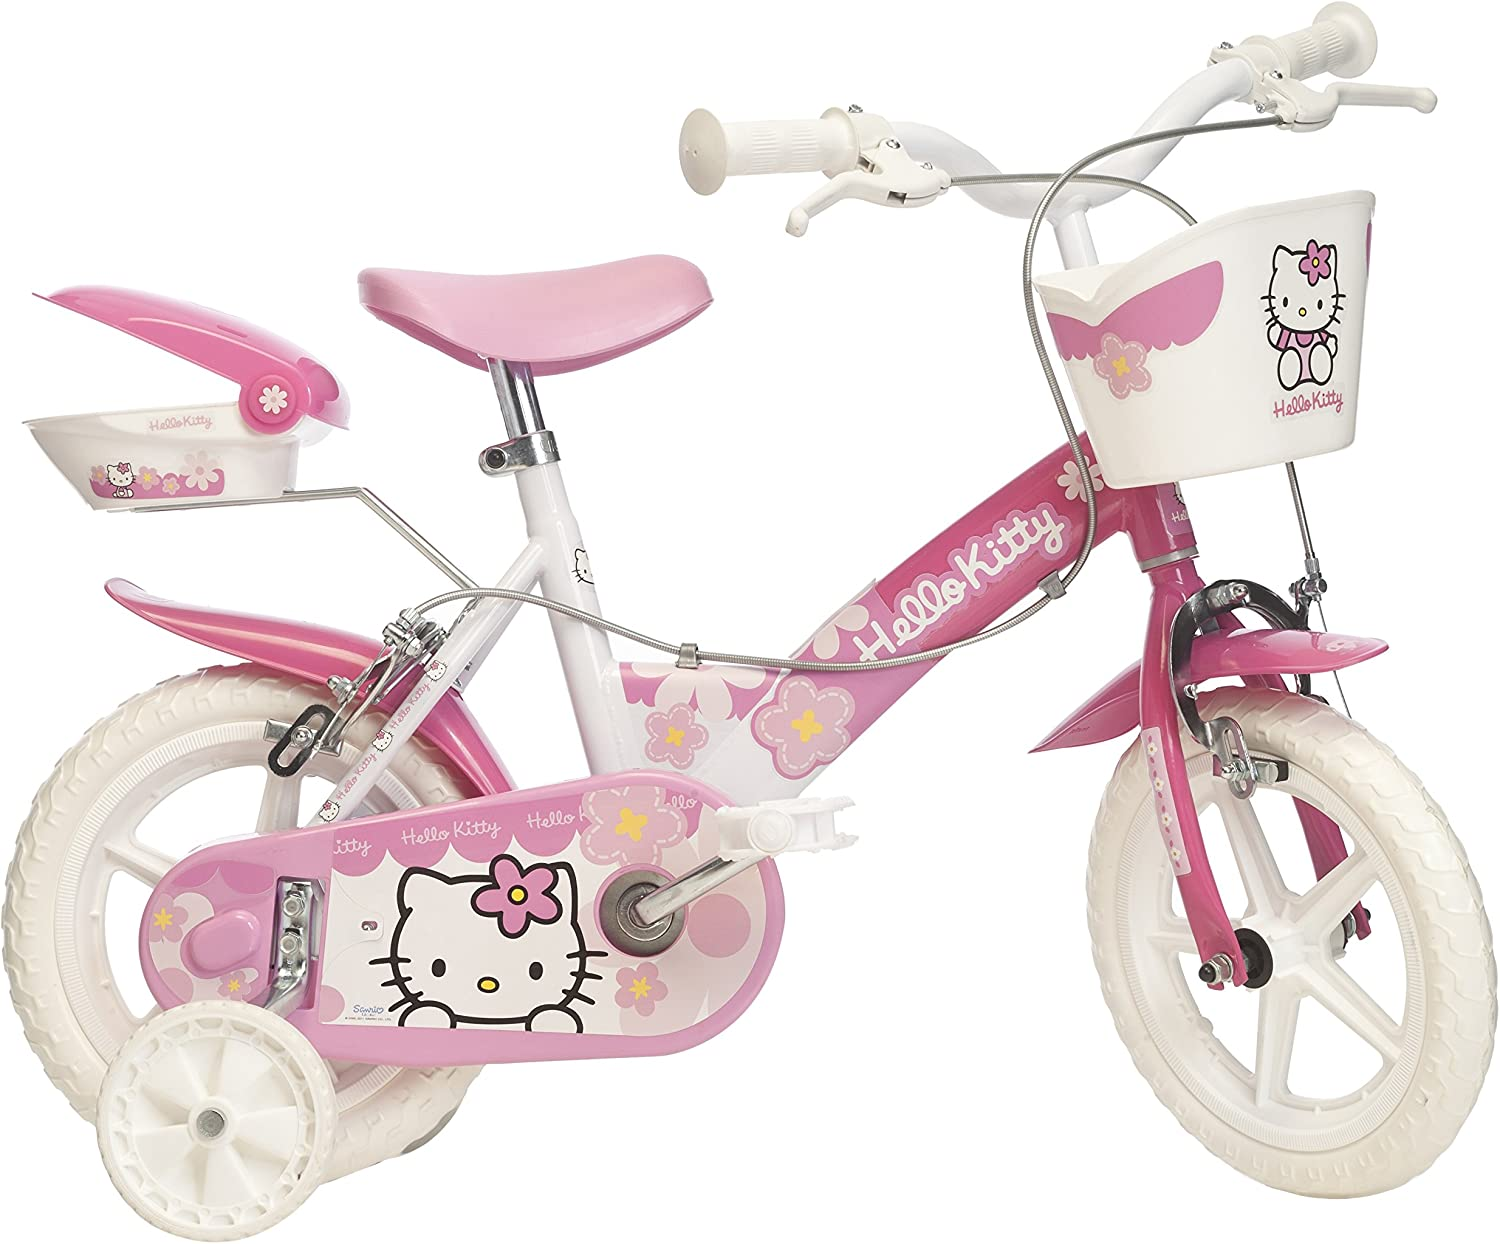 Hello Kitty 65DI060 - Bicicleta 12